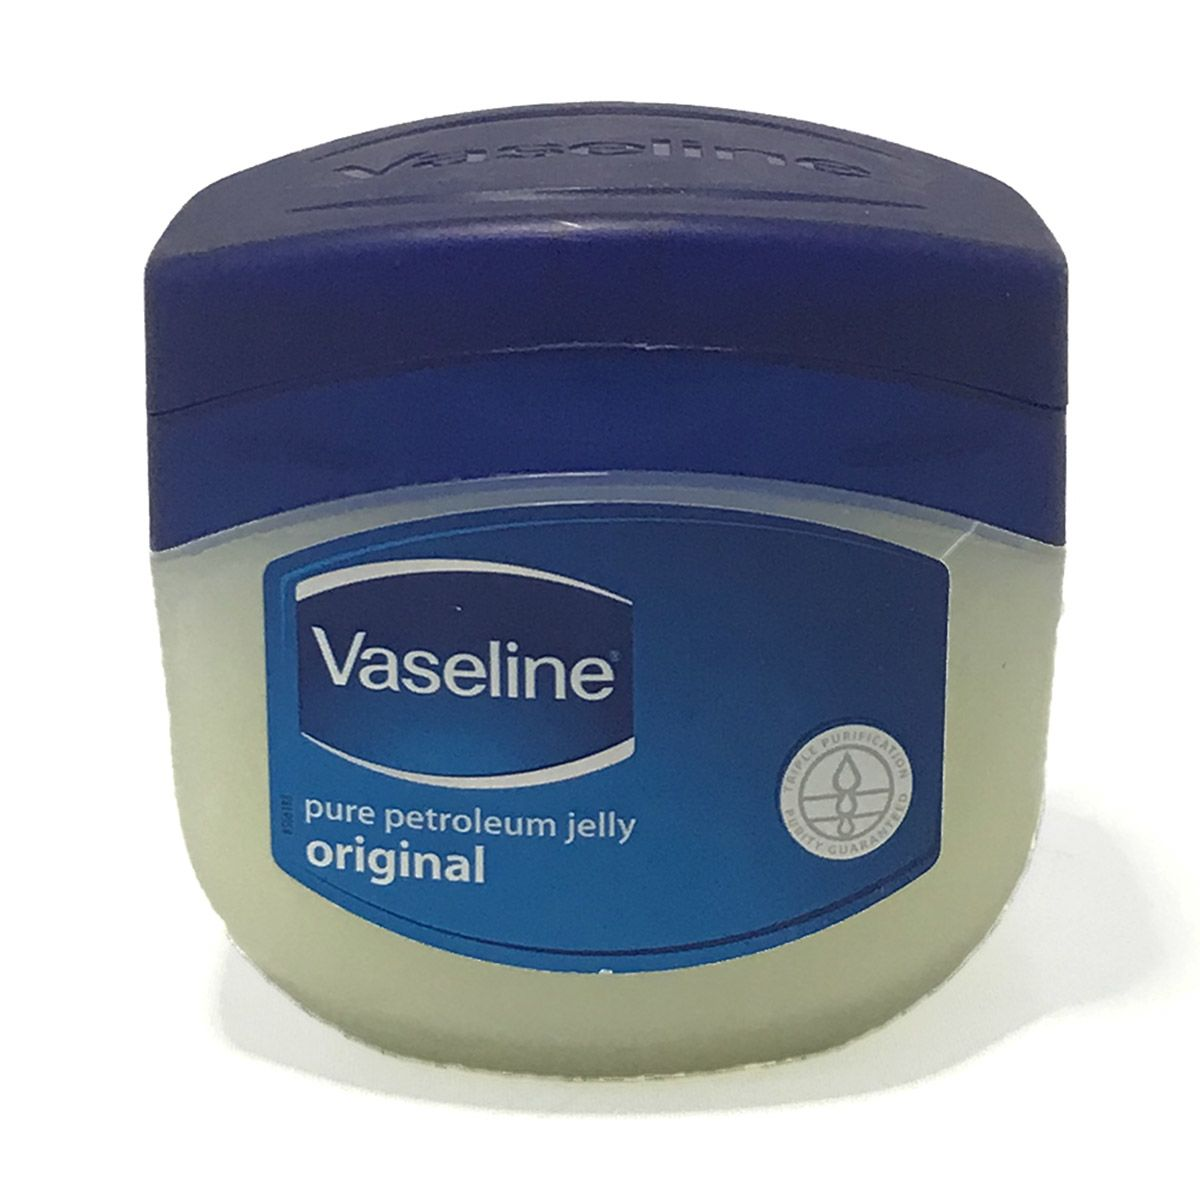 Vaseline Petroleum Jelly Original 250 ml